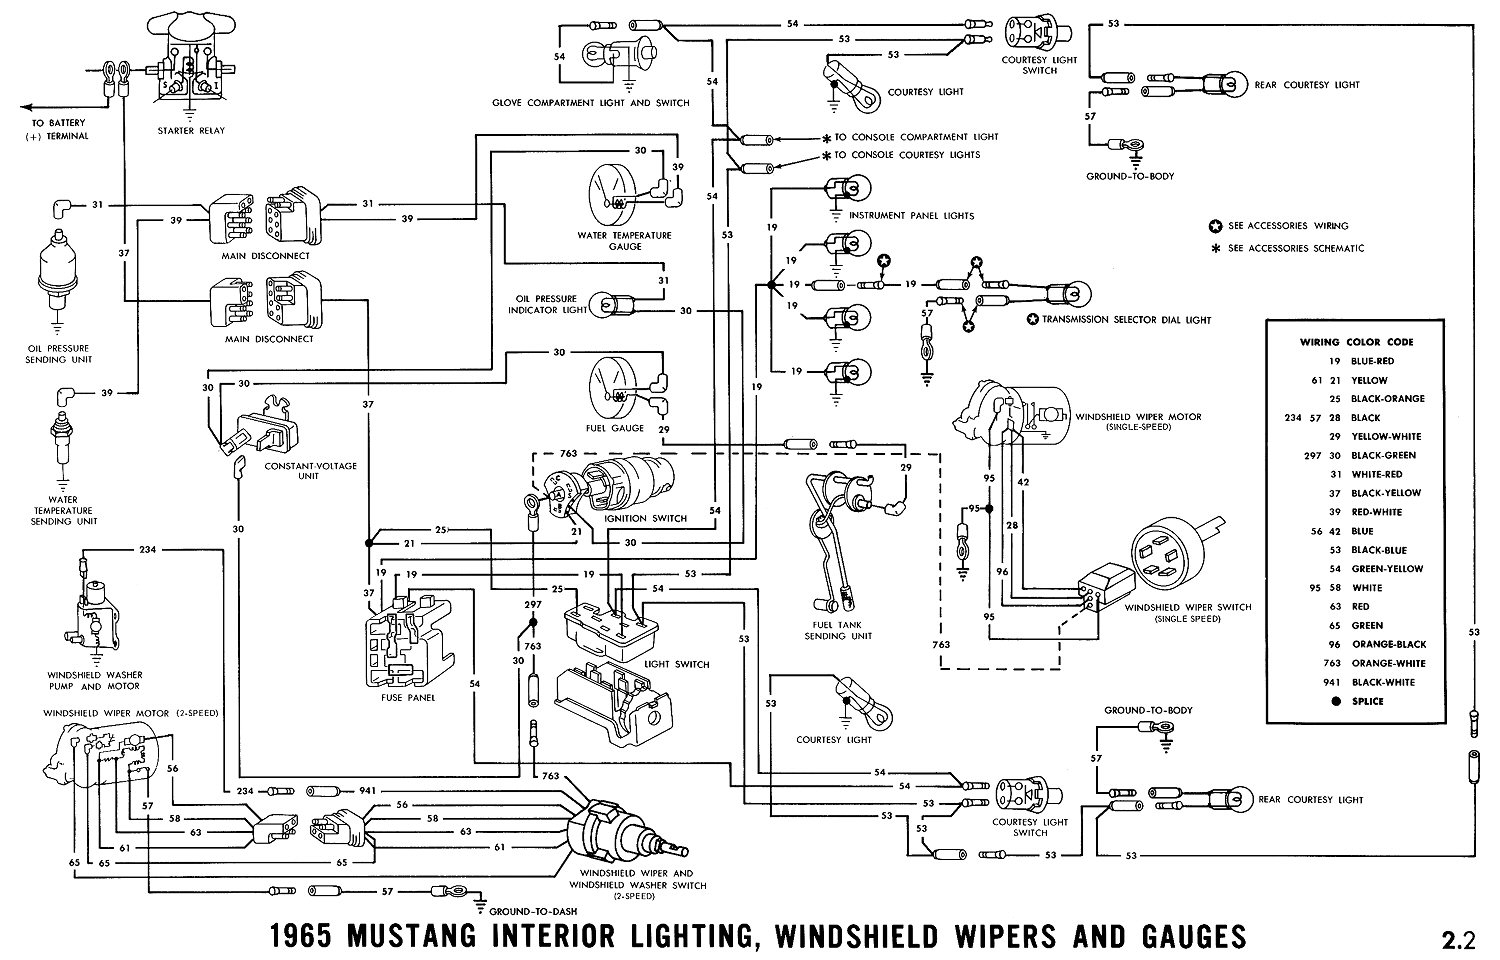 1965 mustang ignition switch wiring diagram Collection-1965 Mustang Wiring Diagrams Average Joe Restoration Beautiful Diagram 4-i